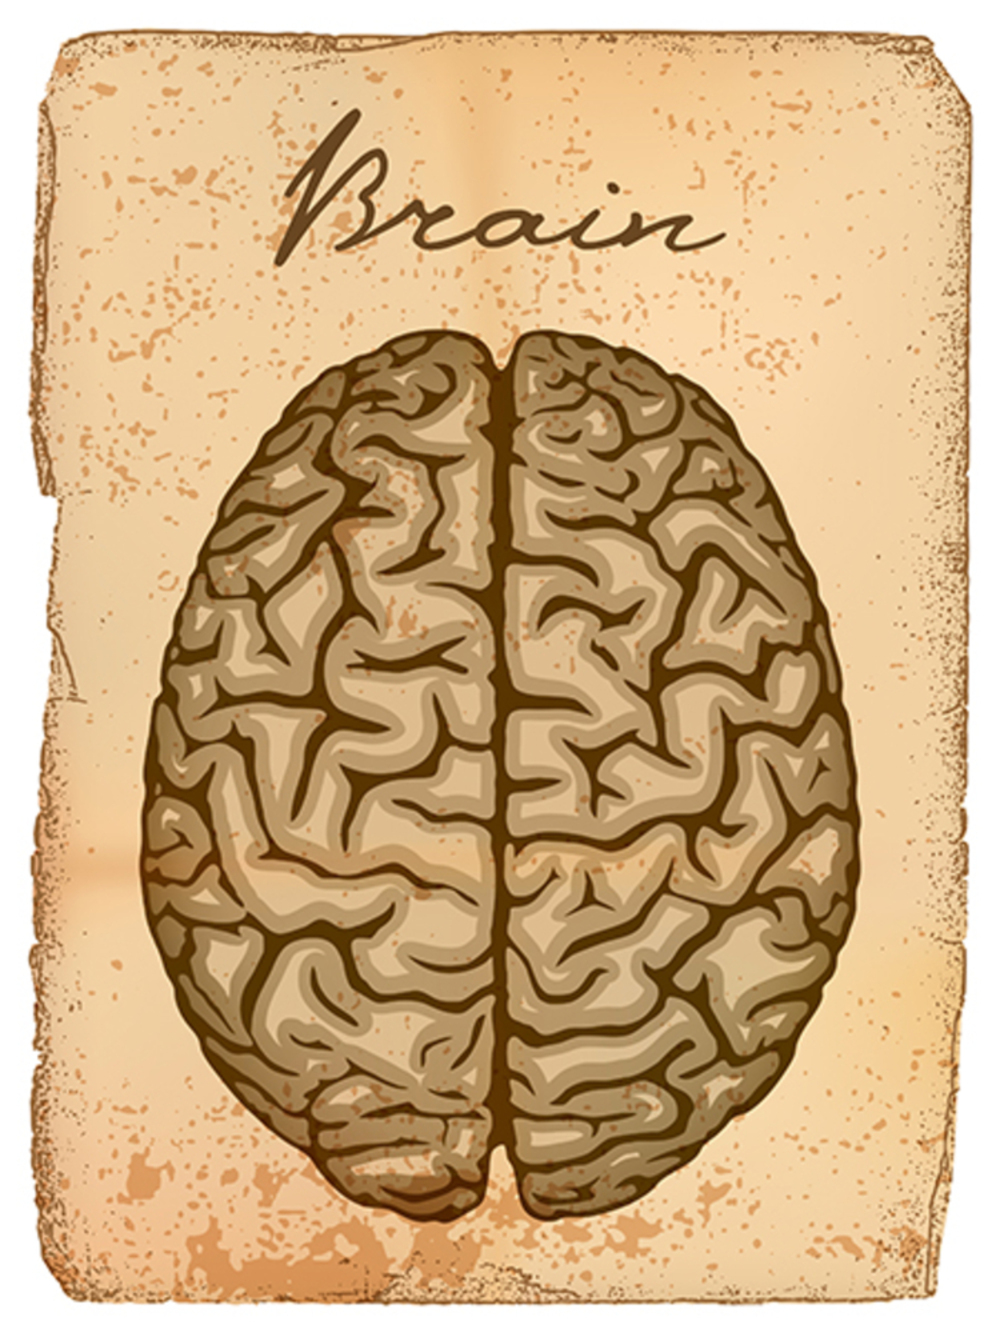 How To Promote Brain HealthThe Healthy Aging Checklist